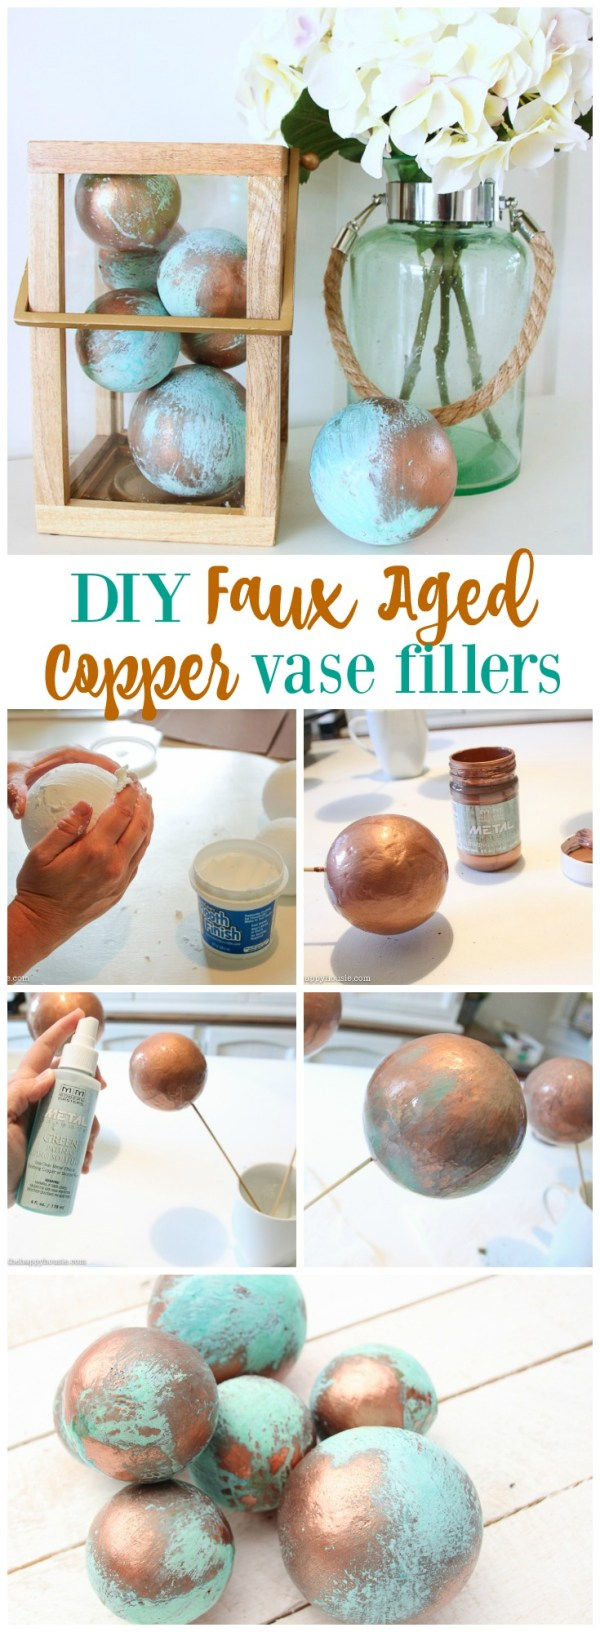 DIY Faux Aged Copper Vase Fillers. These simple and beautiful DIY faux copper ball vase fillers… are a simple and beautiful home decor craft.